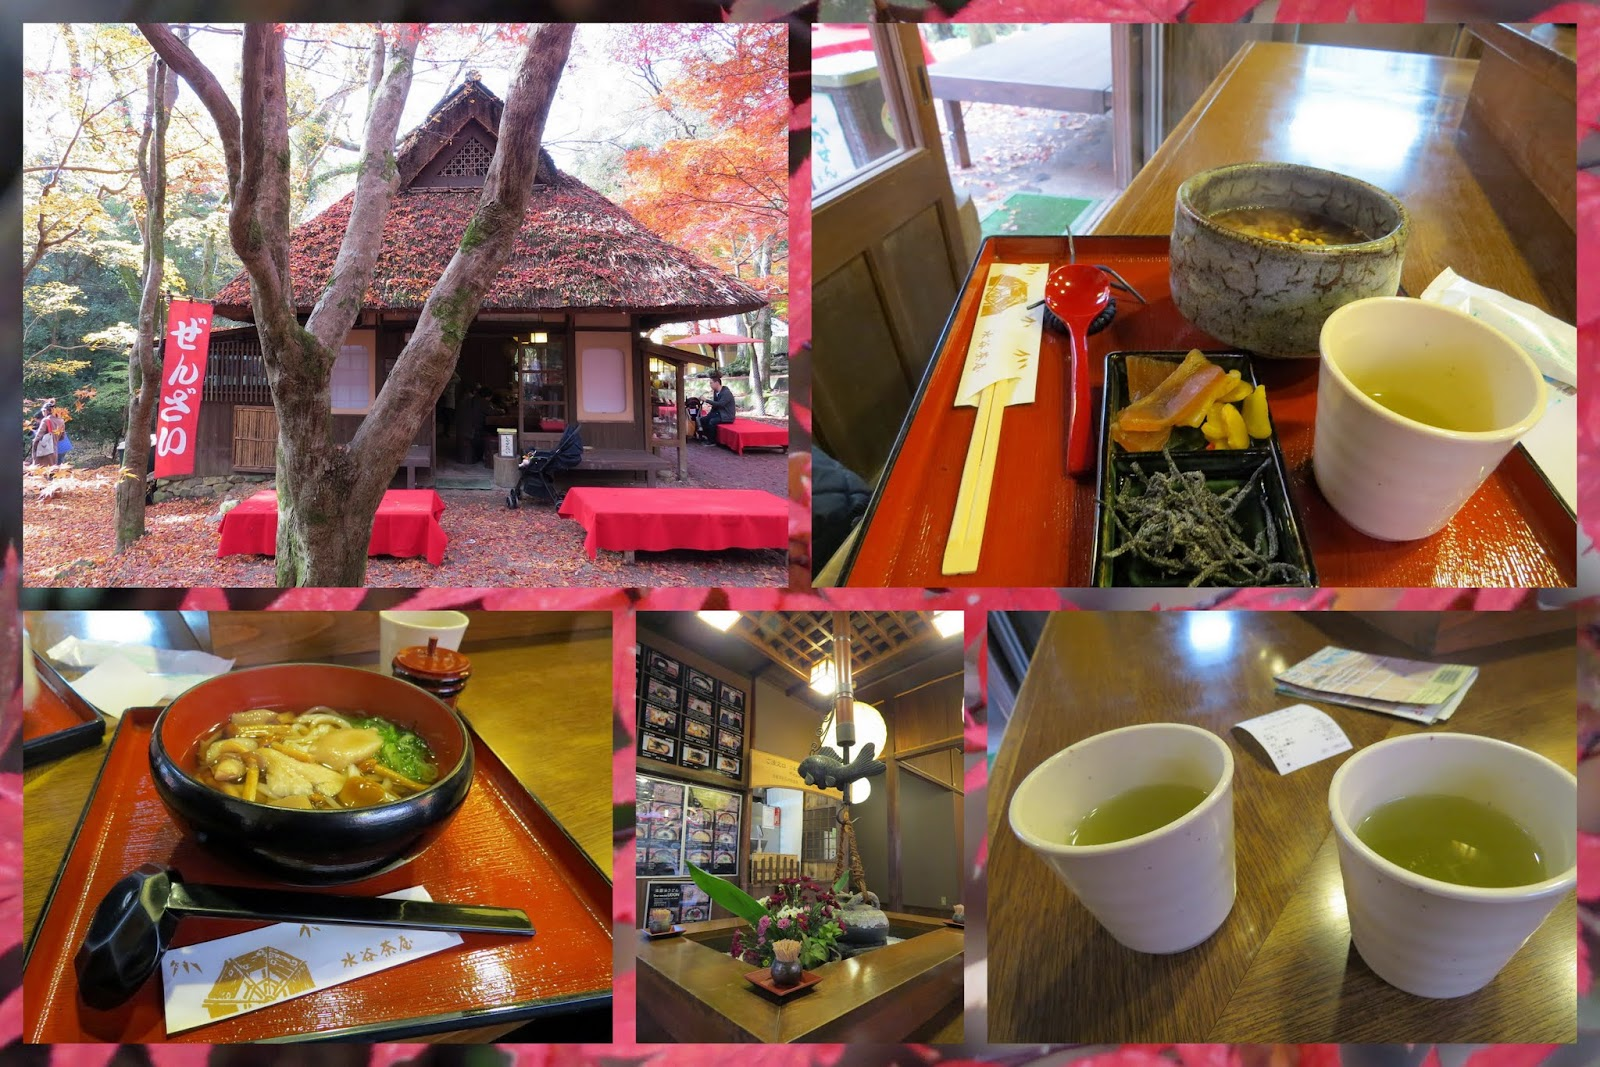 Tea House at Nara Japan